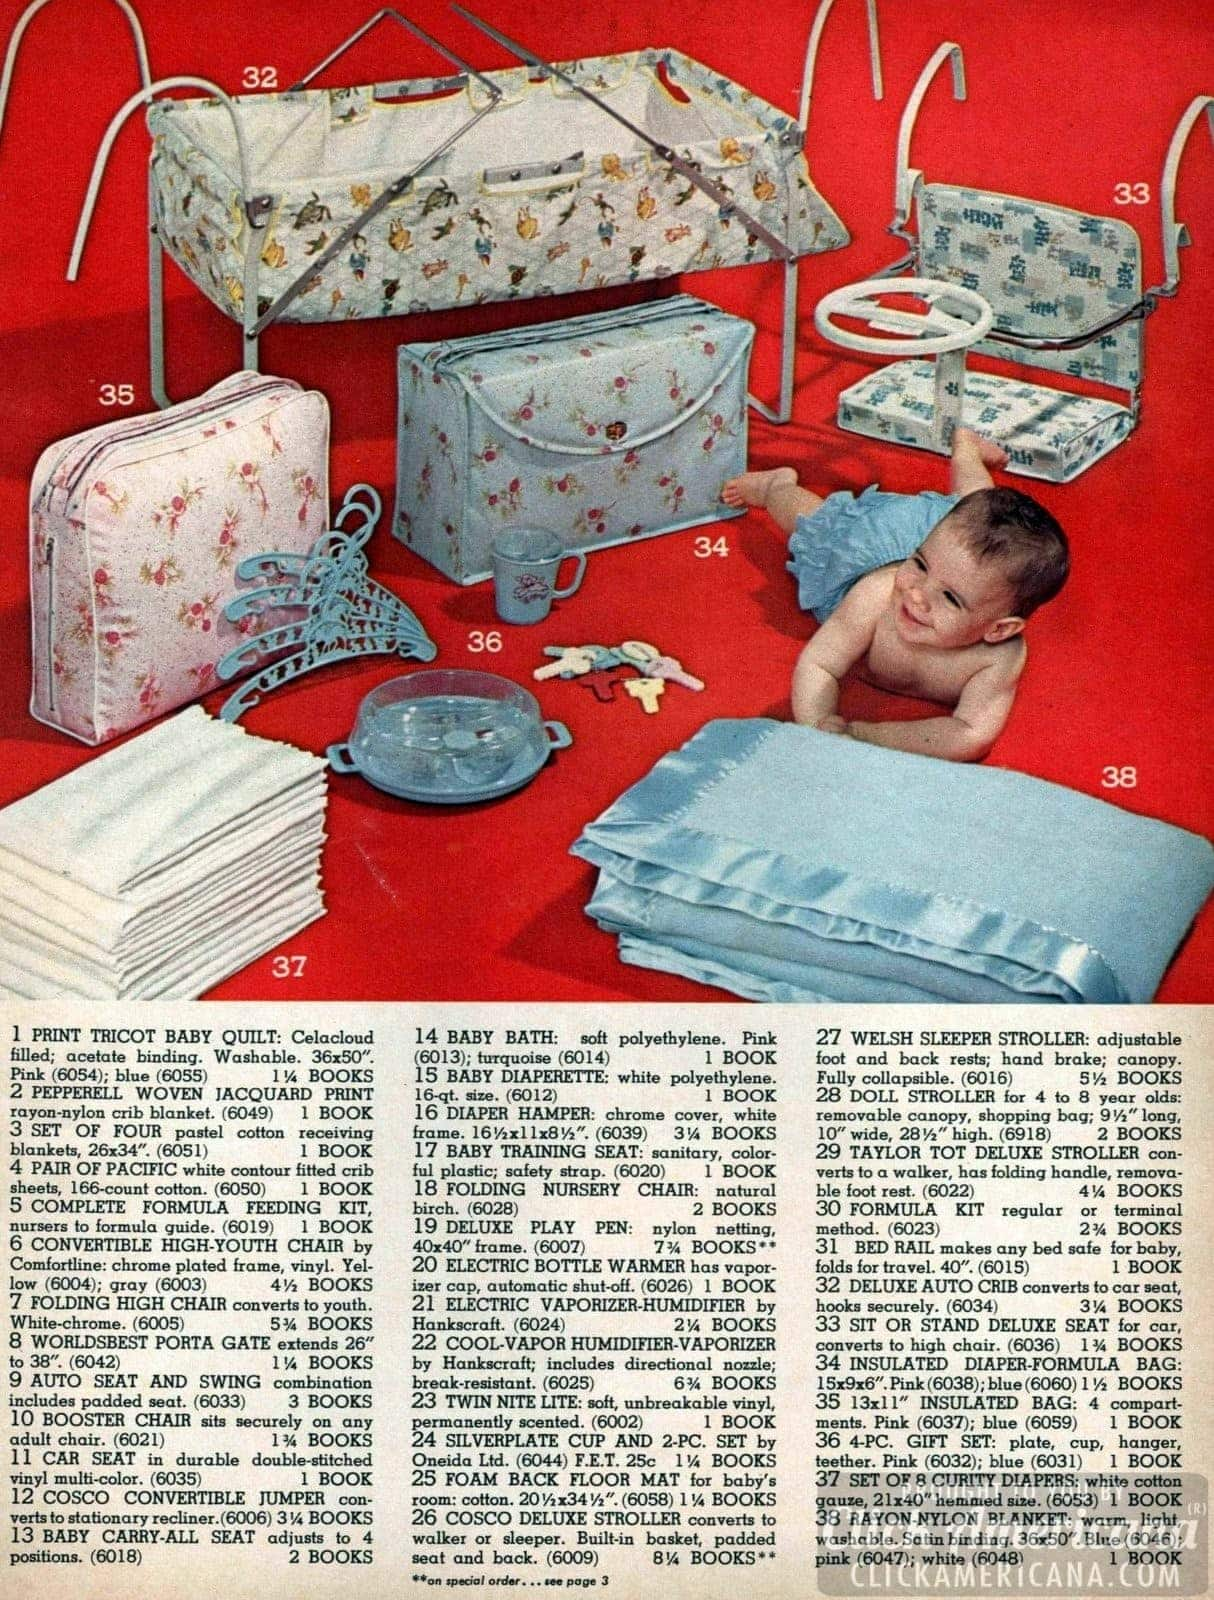 Vintage baby gear - hangers, seat, blankets, toys, deluxe auto crib that converts to a car seat